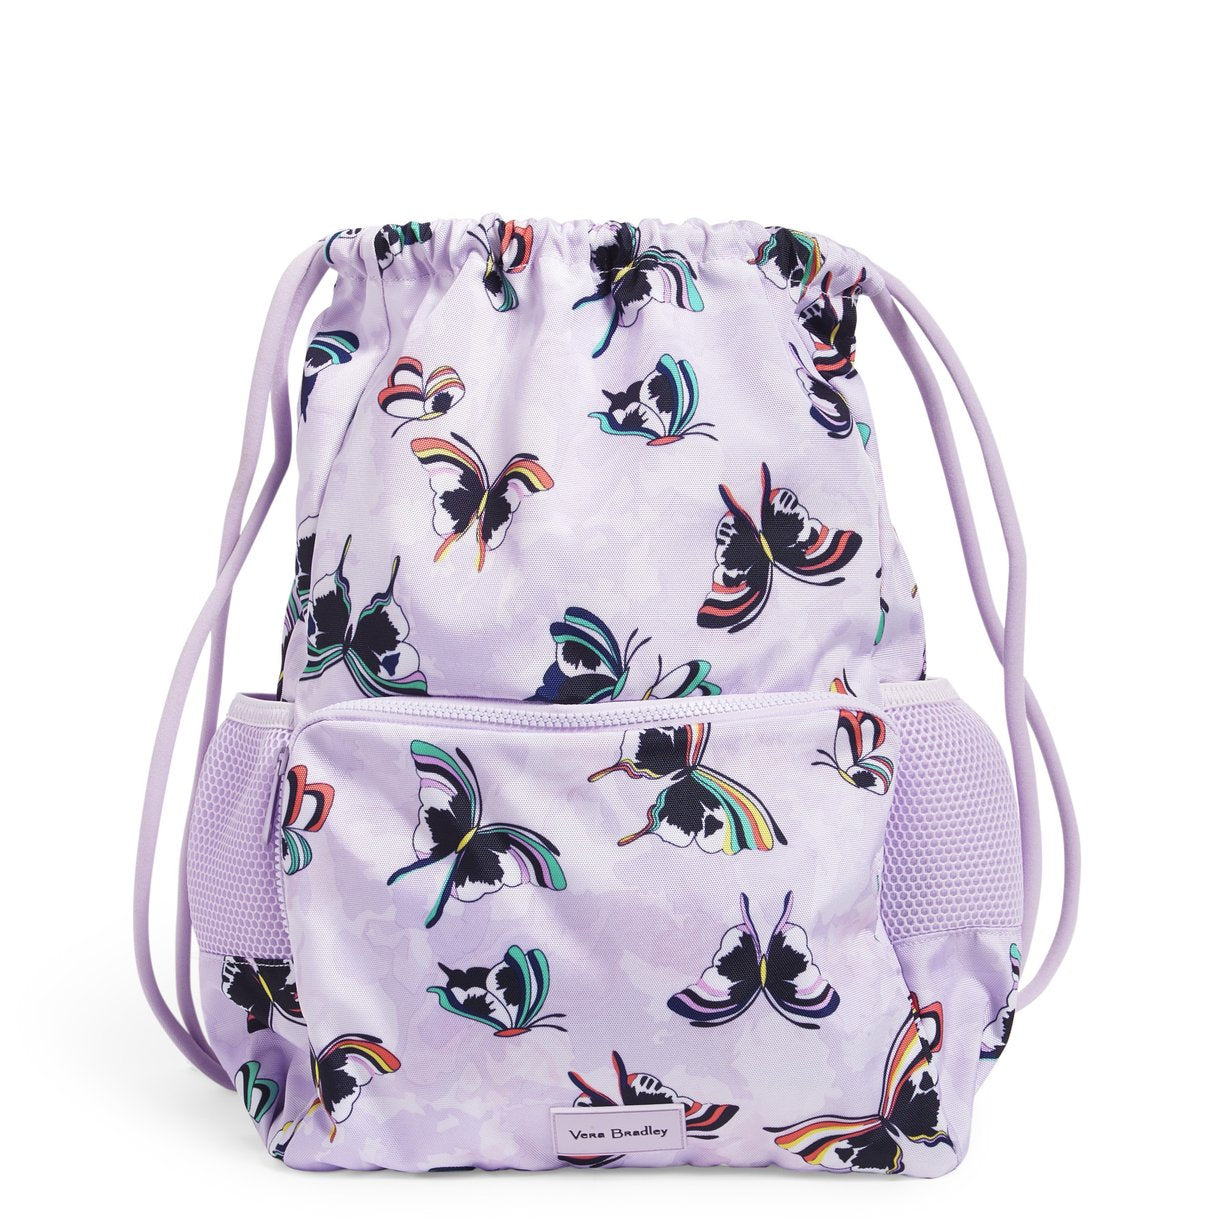 Deluxe Drawstring Backsack